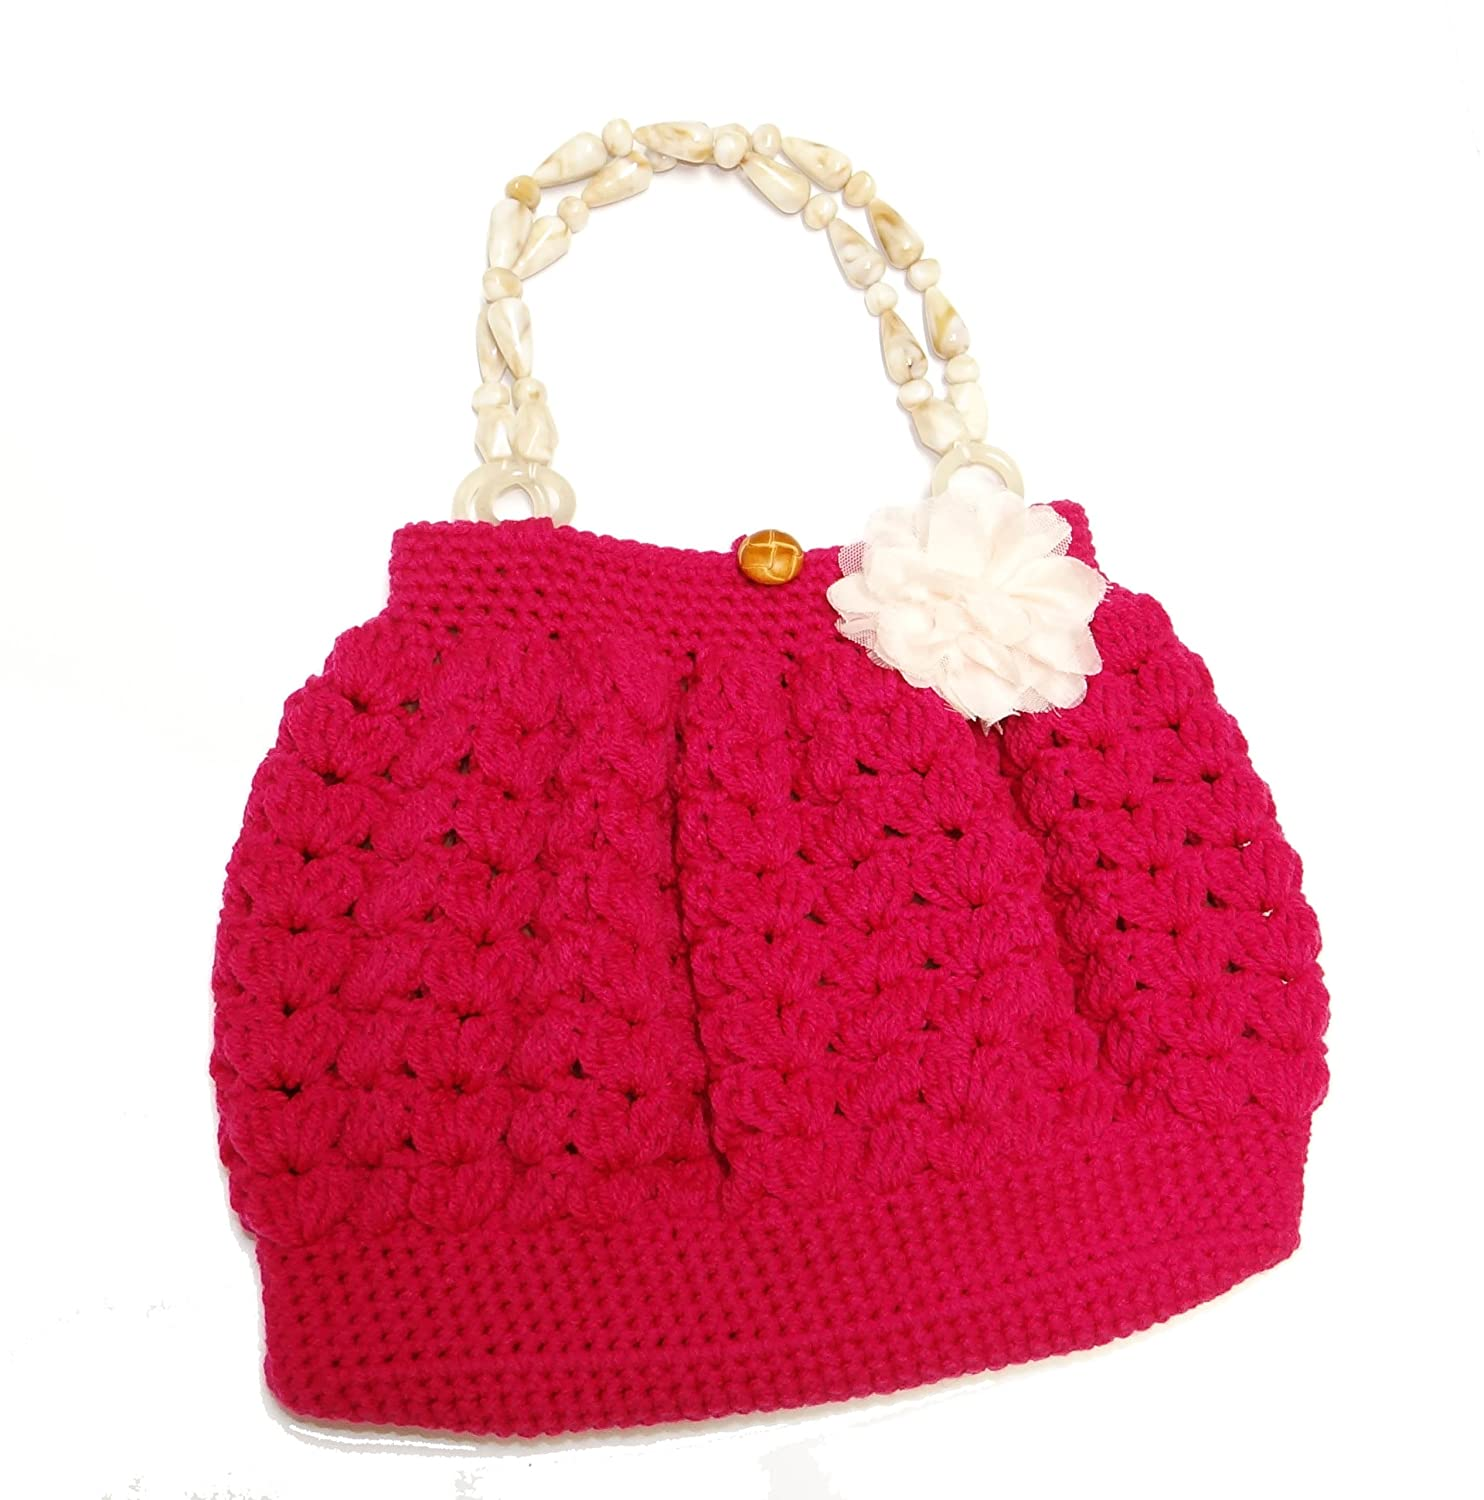 Shell Pattern Crochet Bag With Handle Top Pink At Amazon Womens